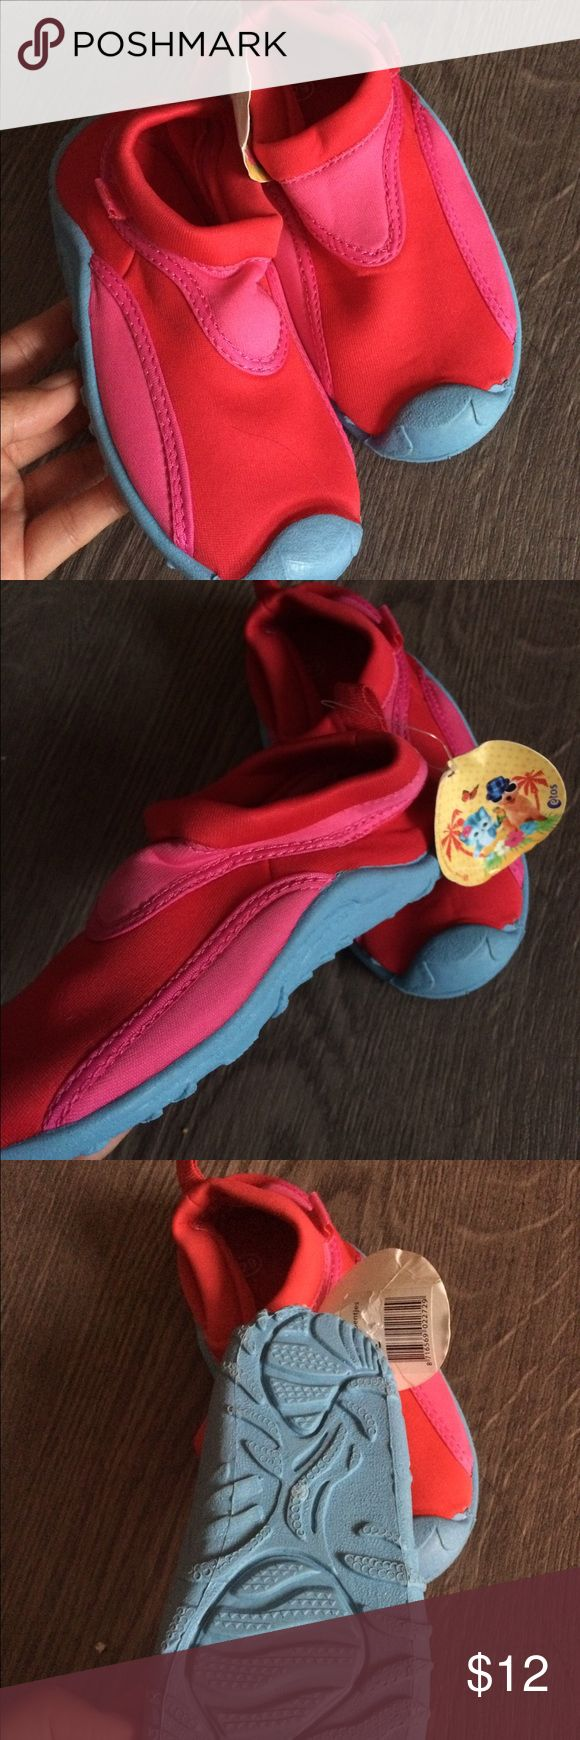 Brand new little girl's water shoes Brand new with tag, size marked as 29, very comfy etos Shoes